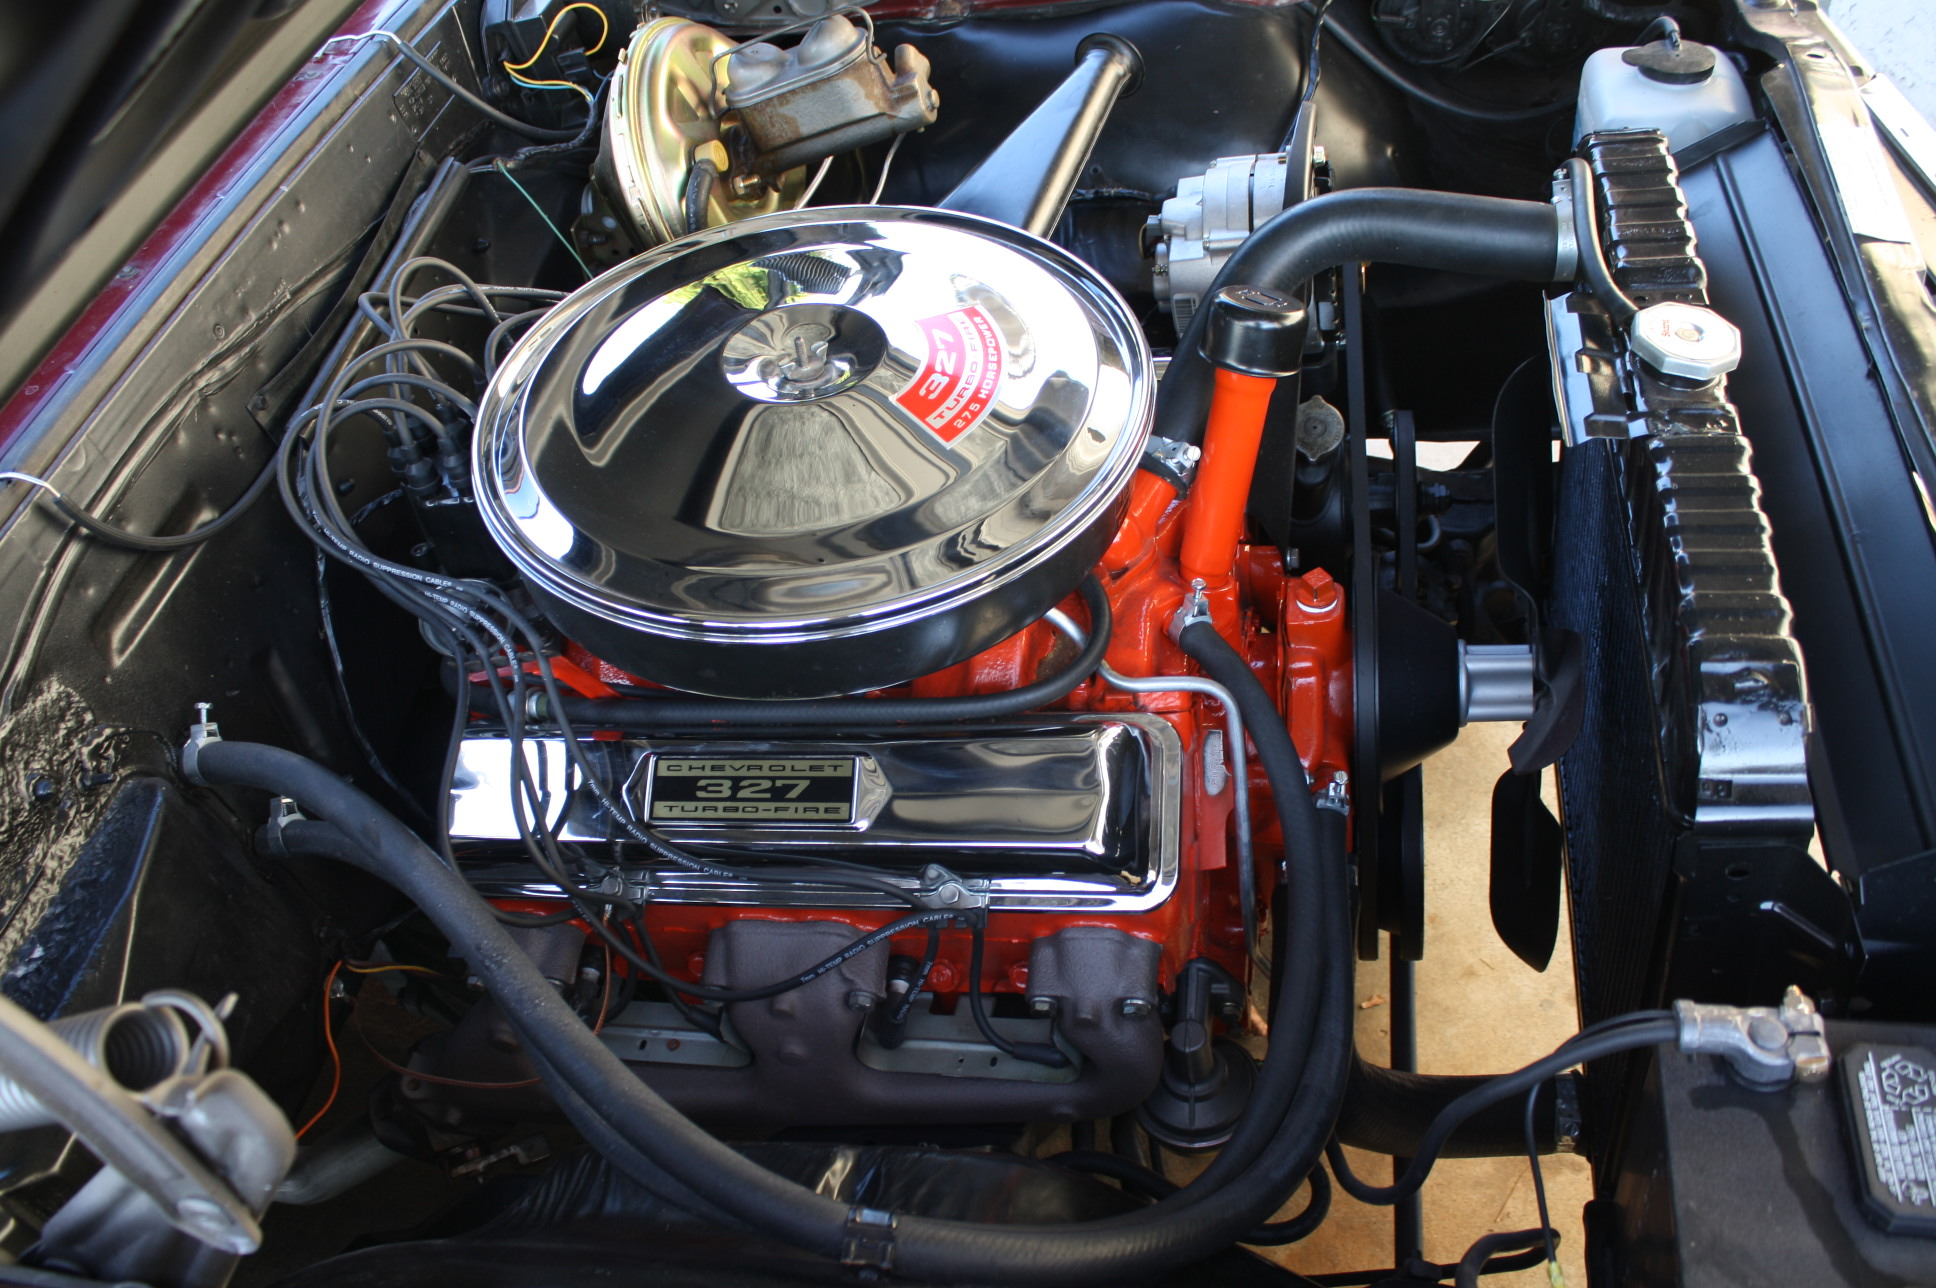 Alternator also Biggest Supercharger On A Muscle Car besides File 1967 Pontiac Parisienne 4 door Hardtop together with Sucp 0809 Rare V8 Performance History likewise 1970 Impala 350 4door Hardtop. on 1966 malibu engines